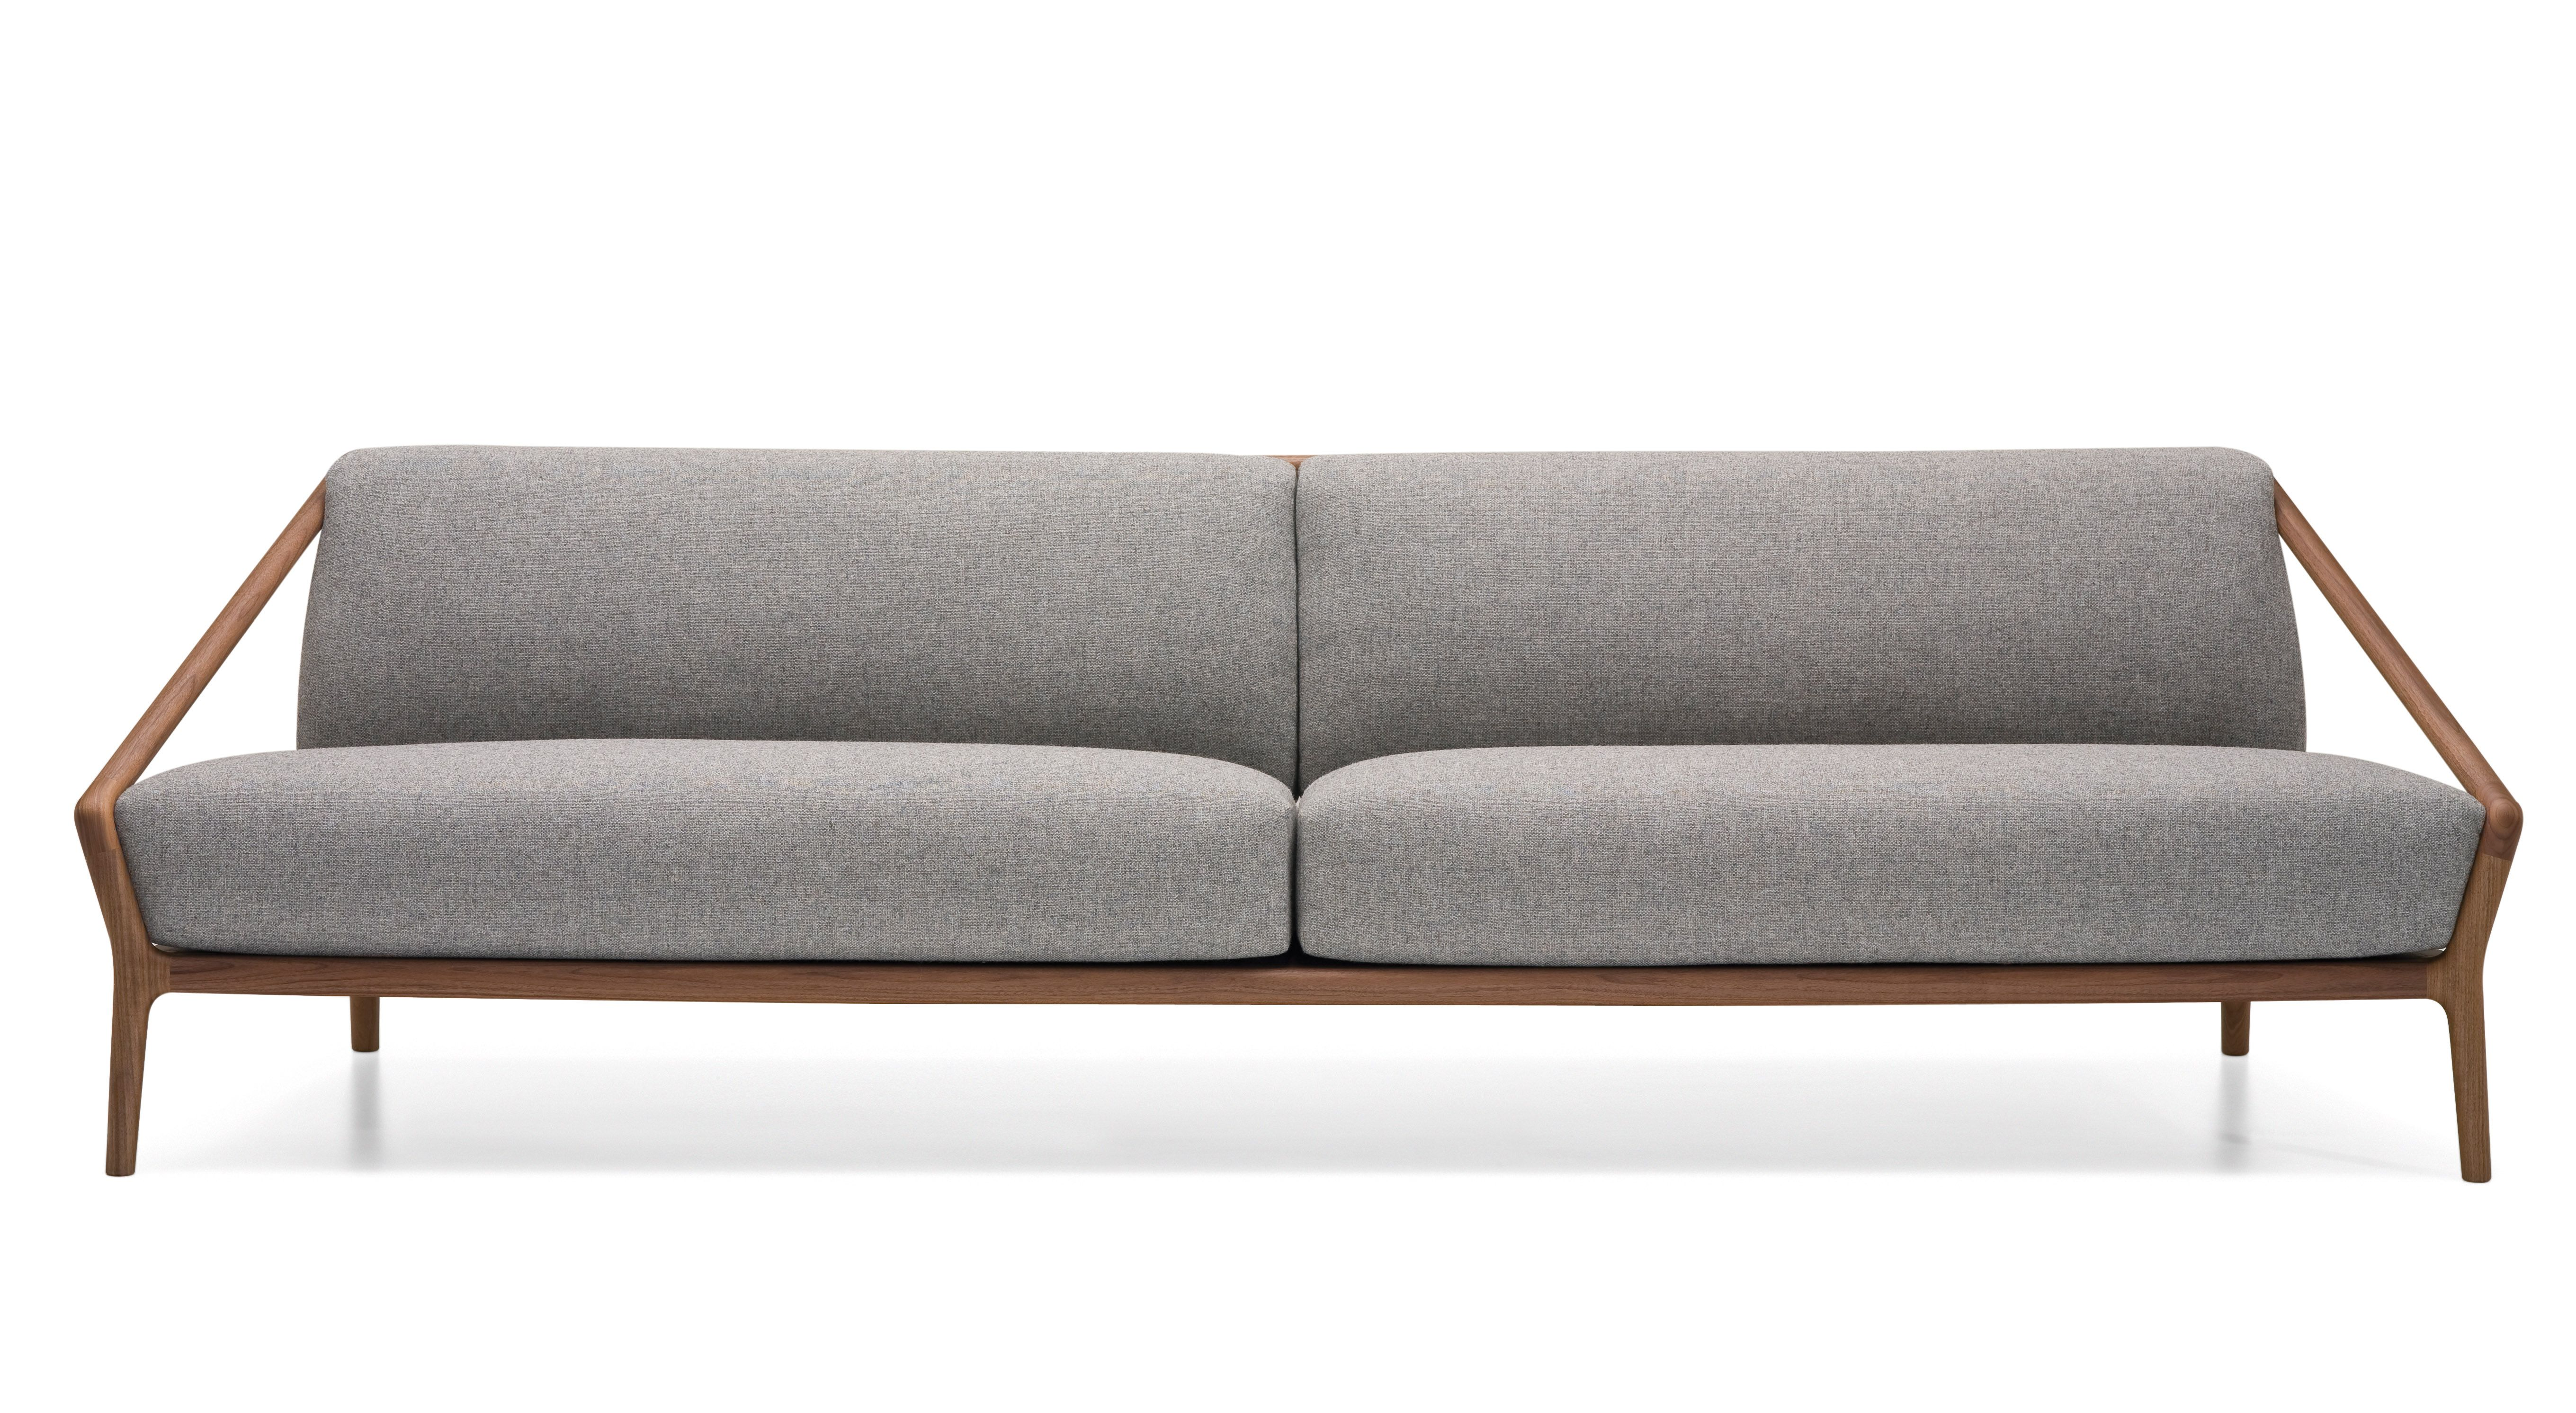 Awesome Grey Leather Sofas With Natural Wooden Frames For Interior